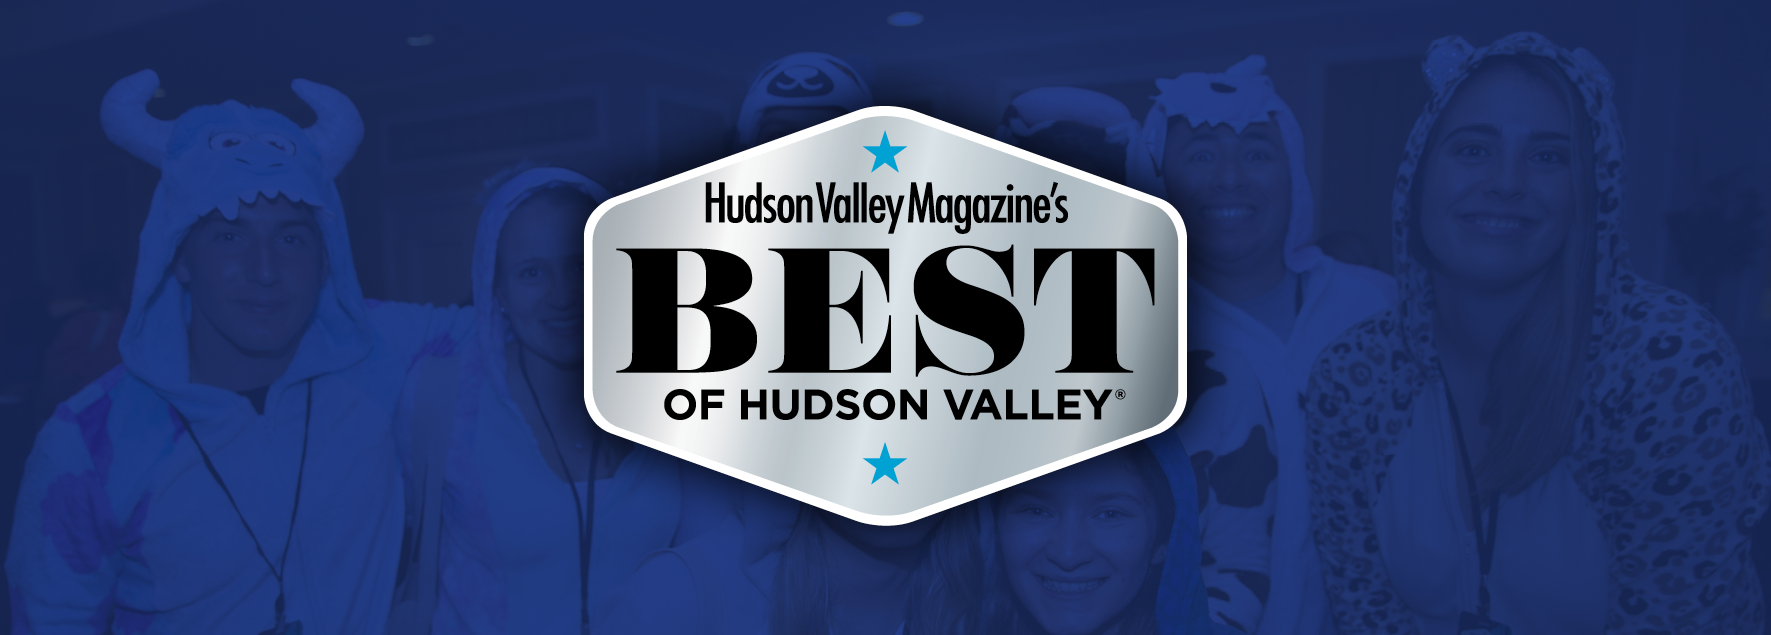 Tickets for 2020 Best of Hudson Valley® Party in Poughkeepsie from ShowClix